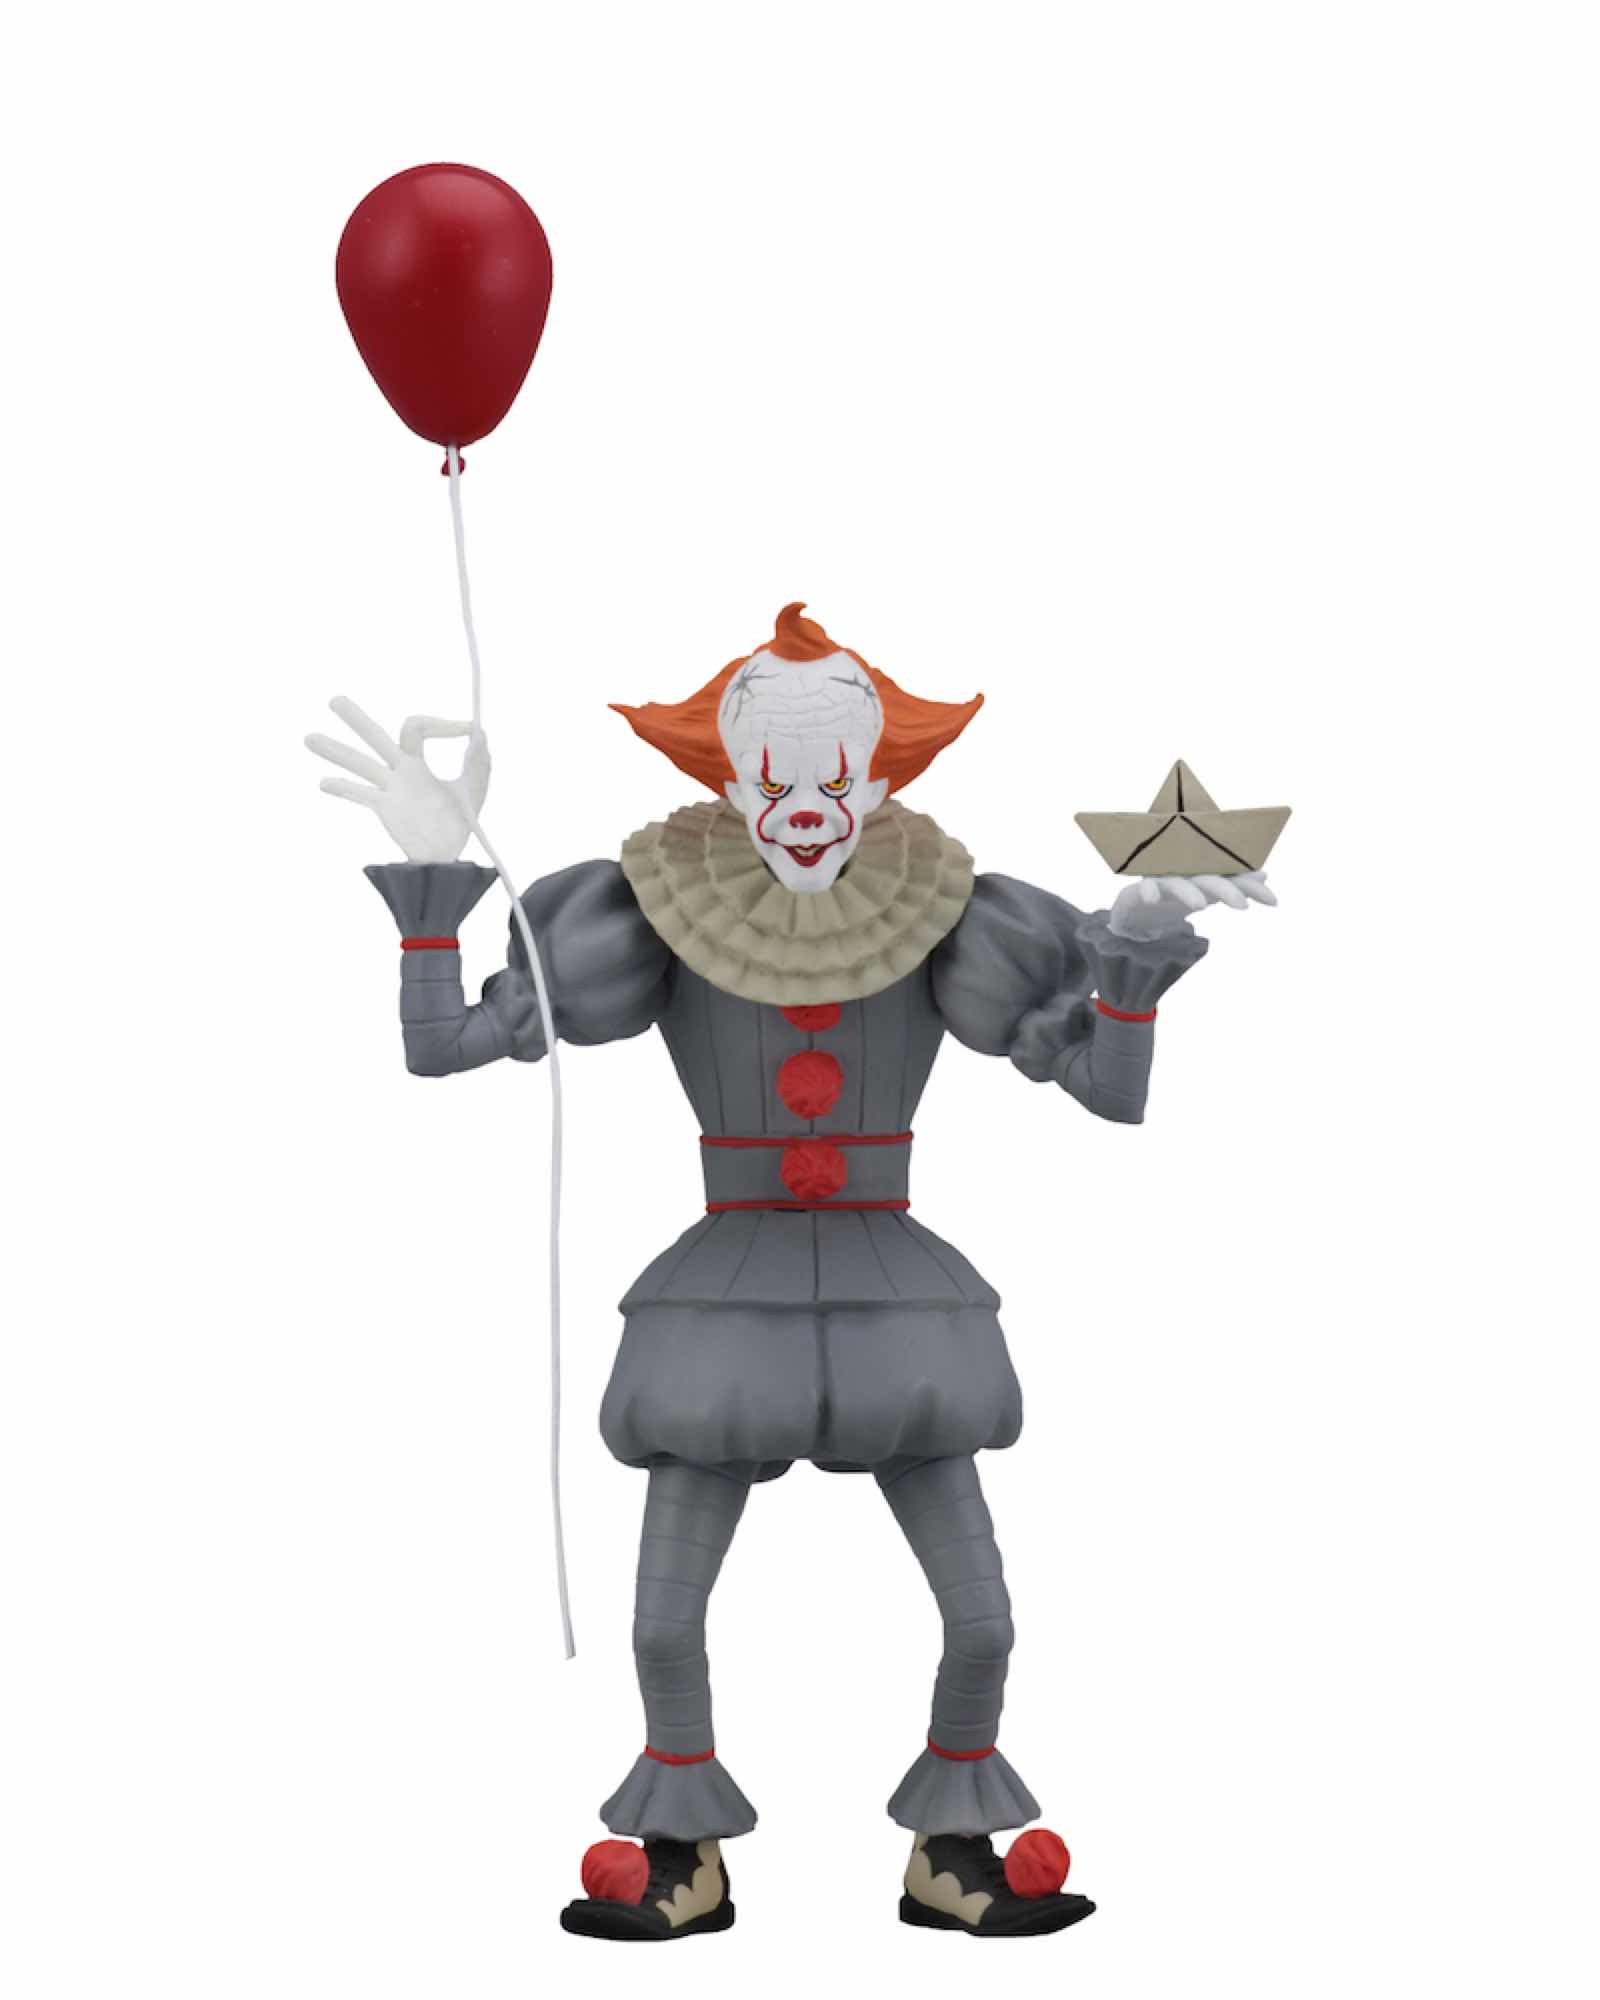 TOONY TERRORS PENNYWISE FIGURA 15 CM SCALE ACTION FIGURE IT 2017 (REISSUE)